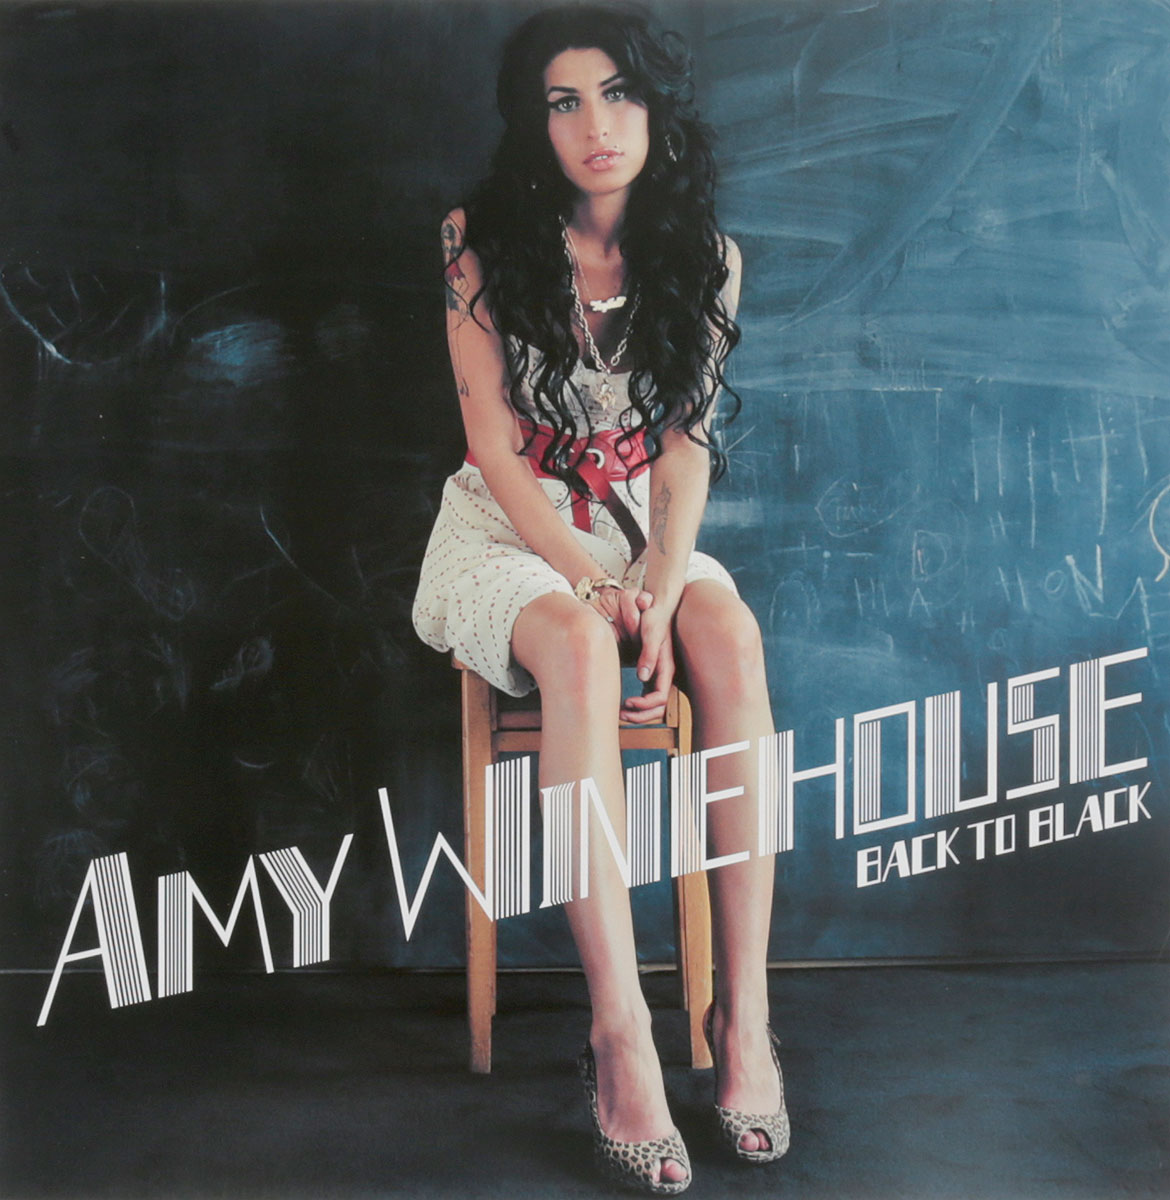 Amy Winehouse. Back To Black. Deluxe Edition (2 LP) кальян amy deluxe 630d 01 glorious click black black